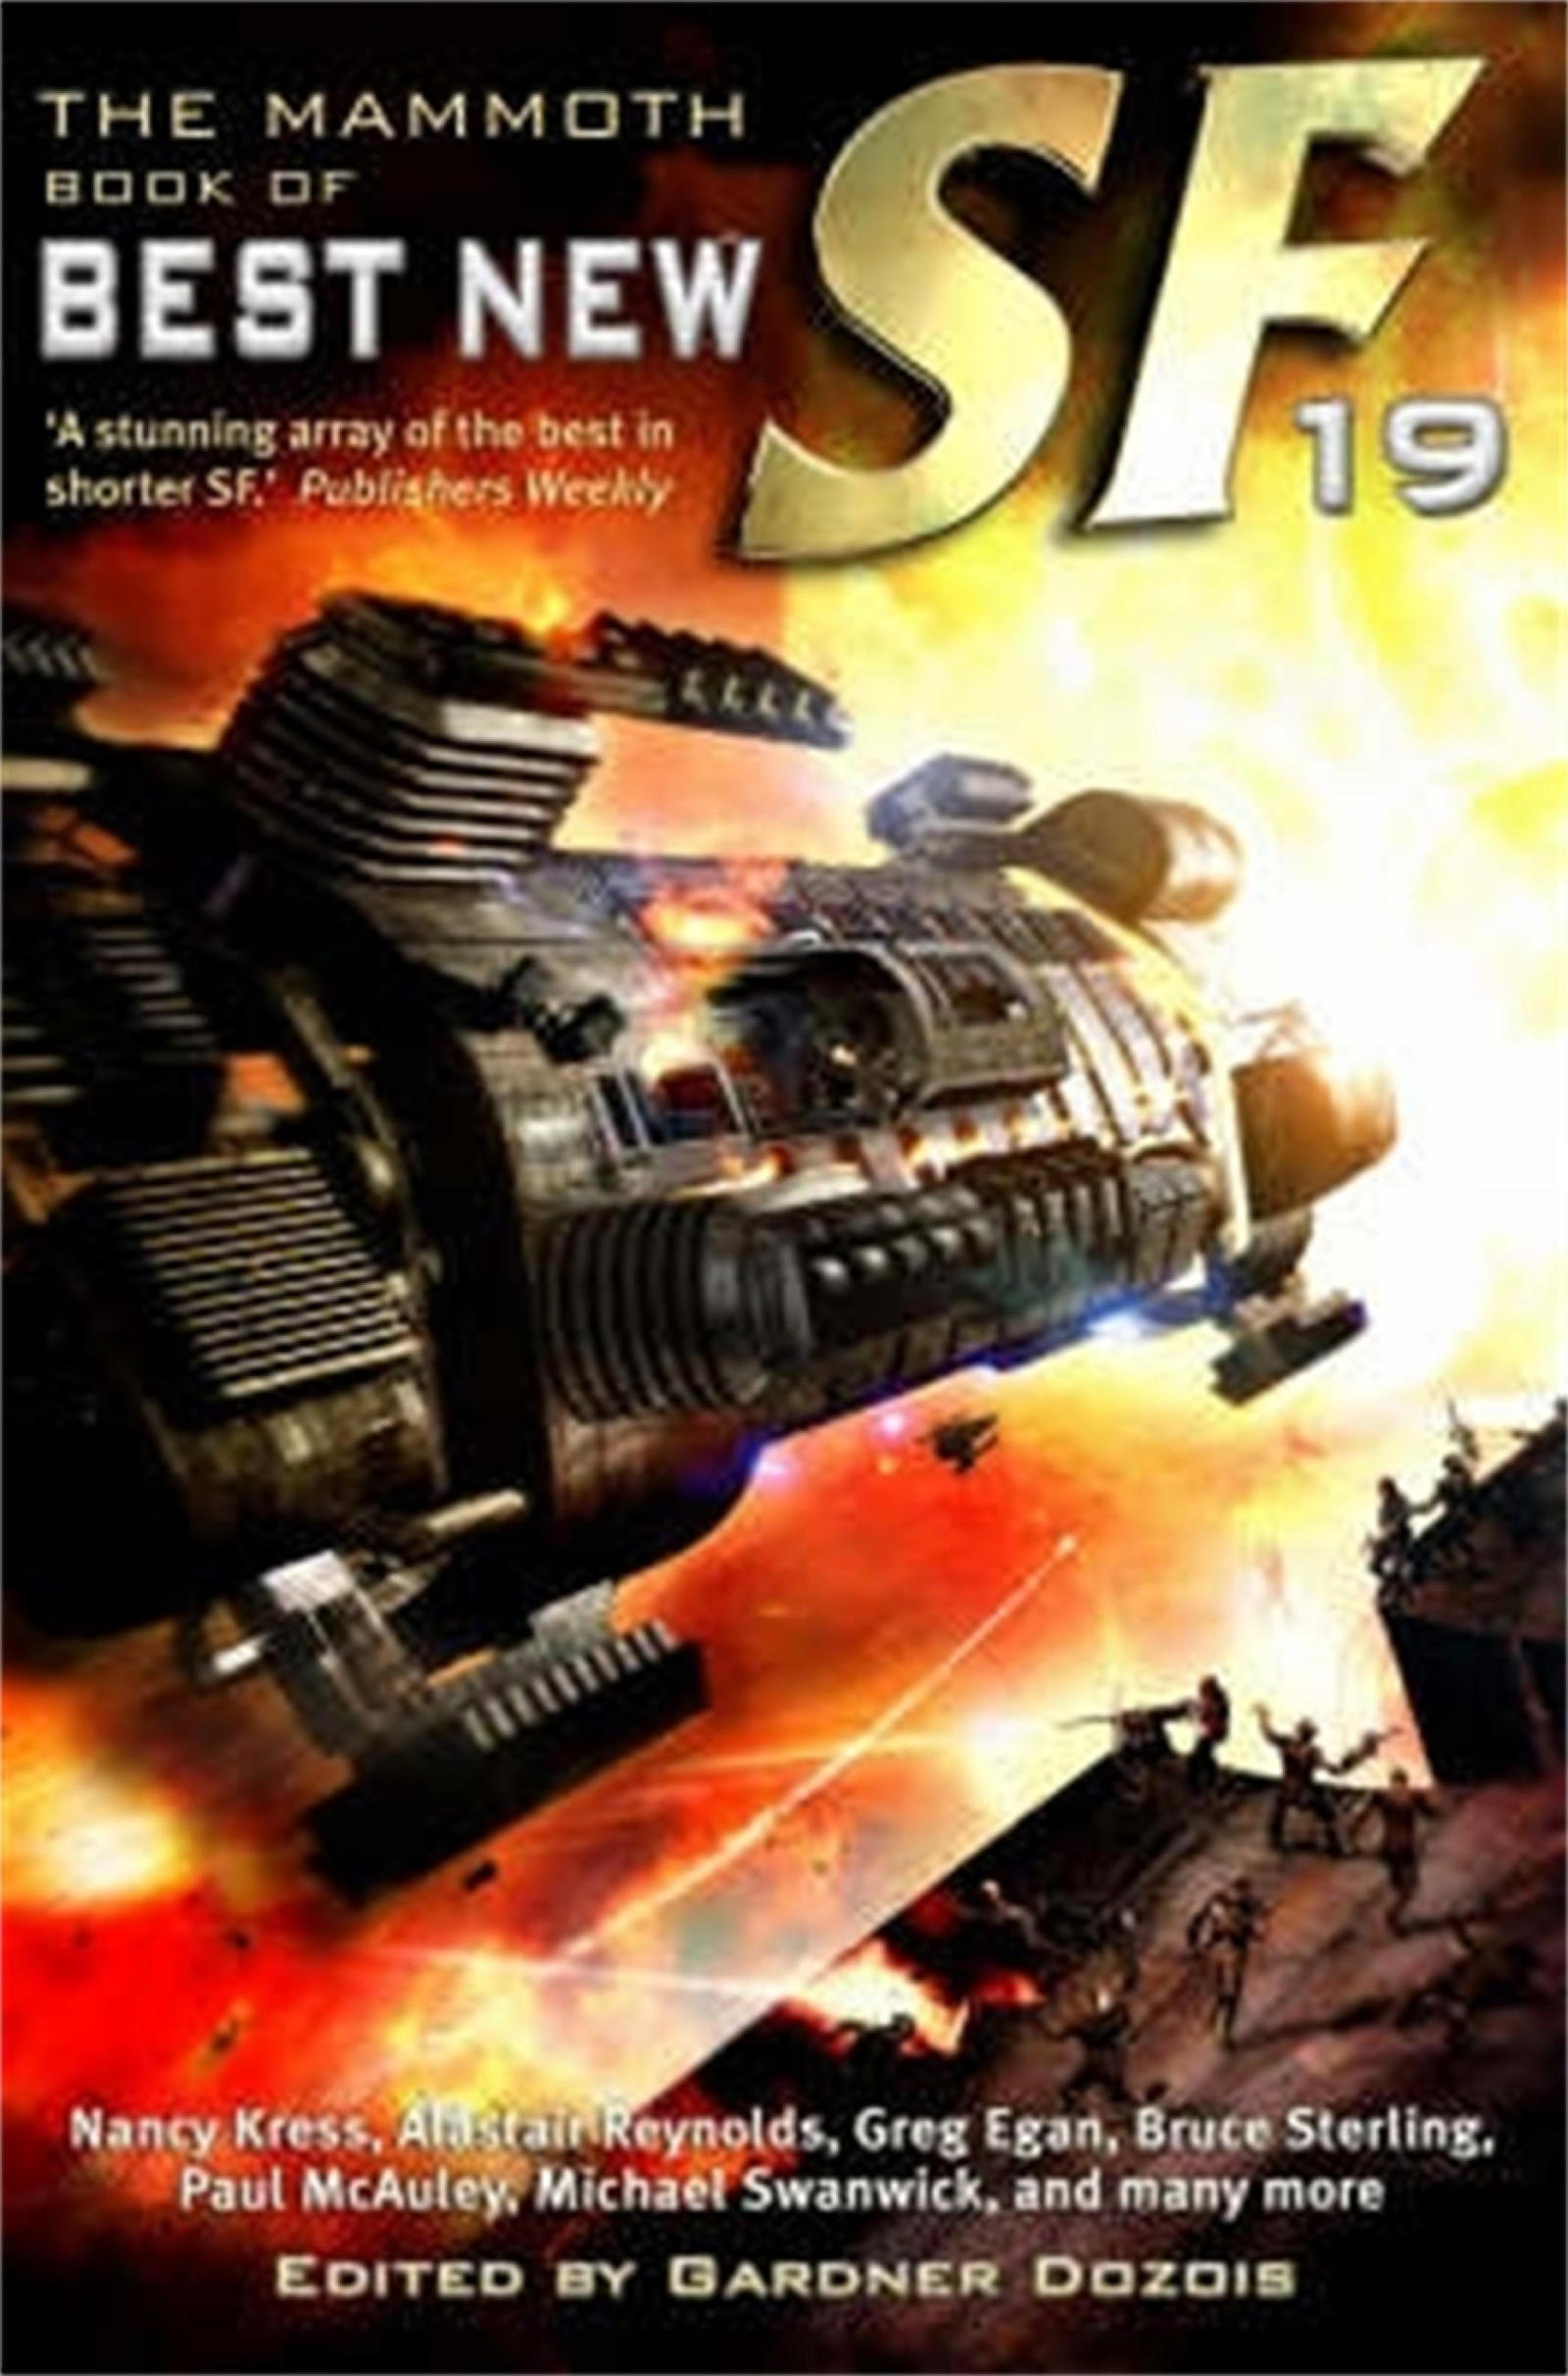 The Mammoth Book of Best New SF [19]